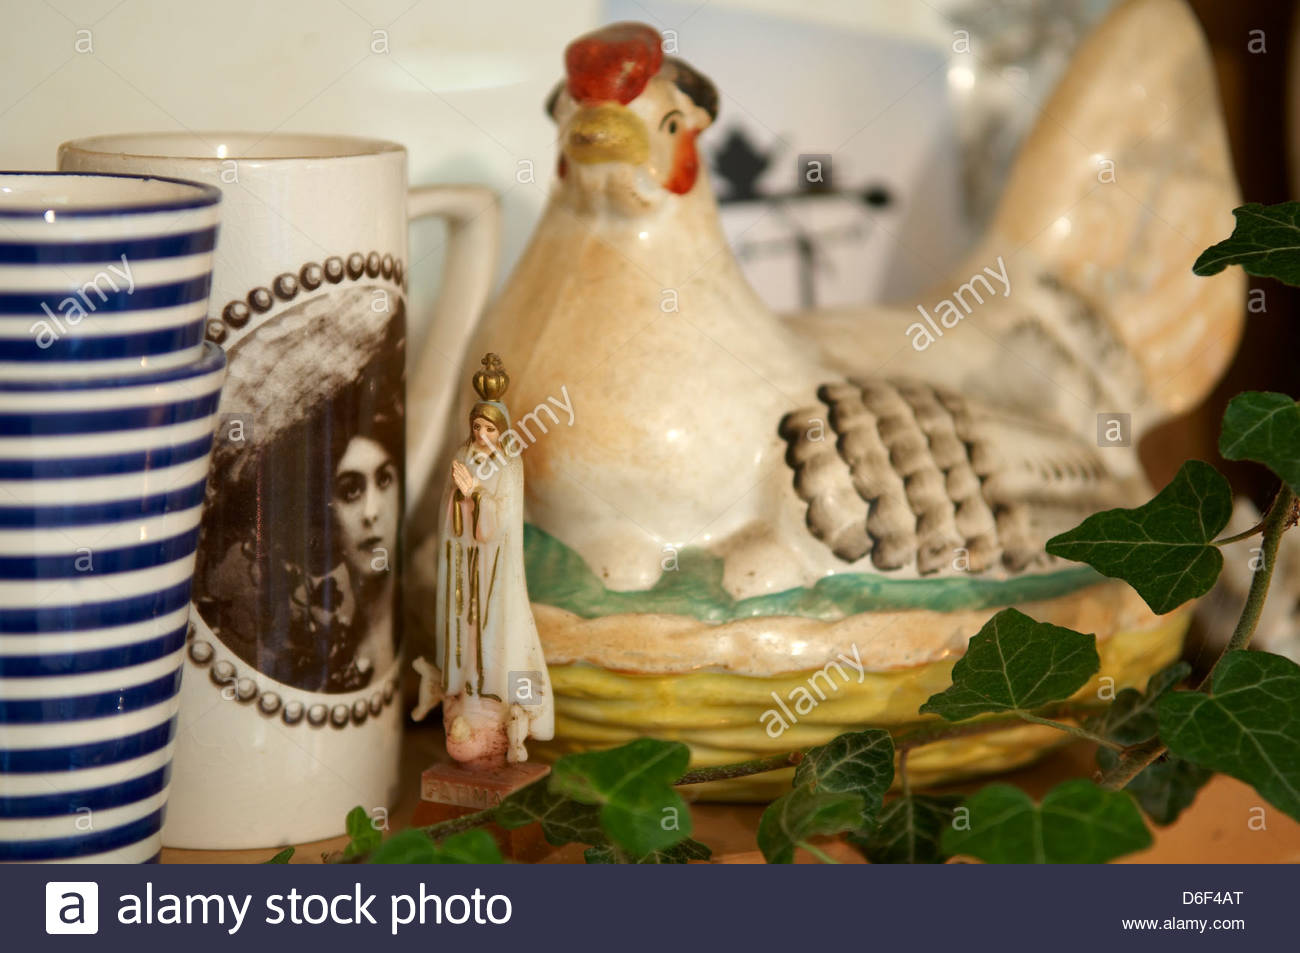 Mugs and a  Chicken shaped egg dish, sitting on the shelf - Stock Image